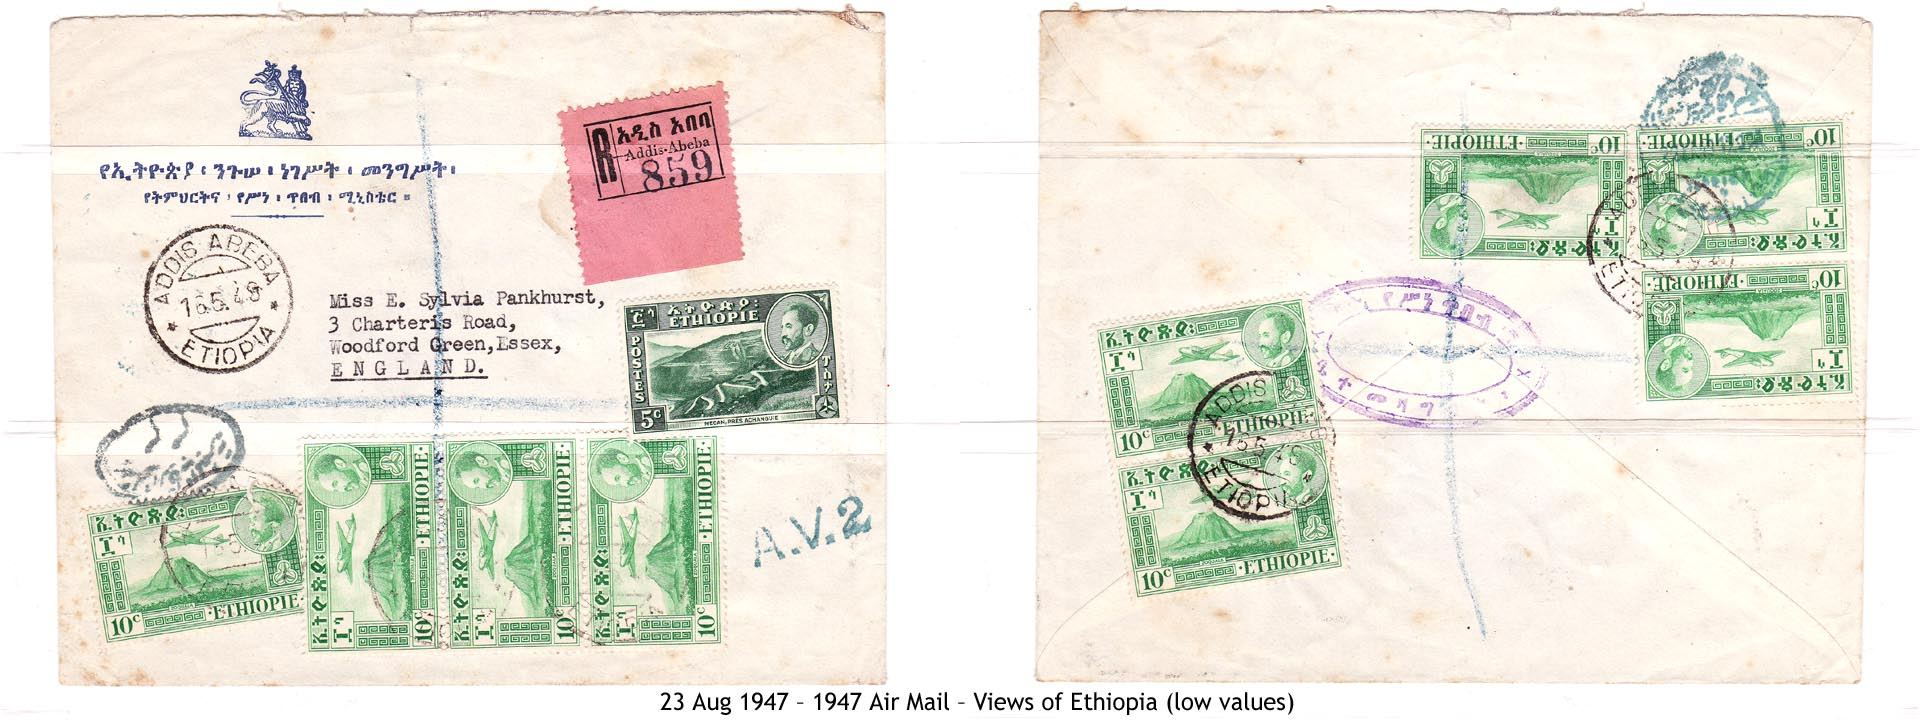 19470823 – 1947 Air Mail – Views of Ethiopia (low values)